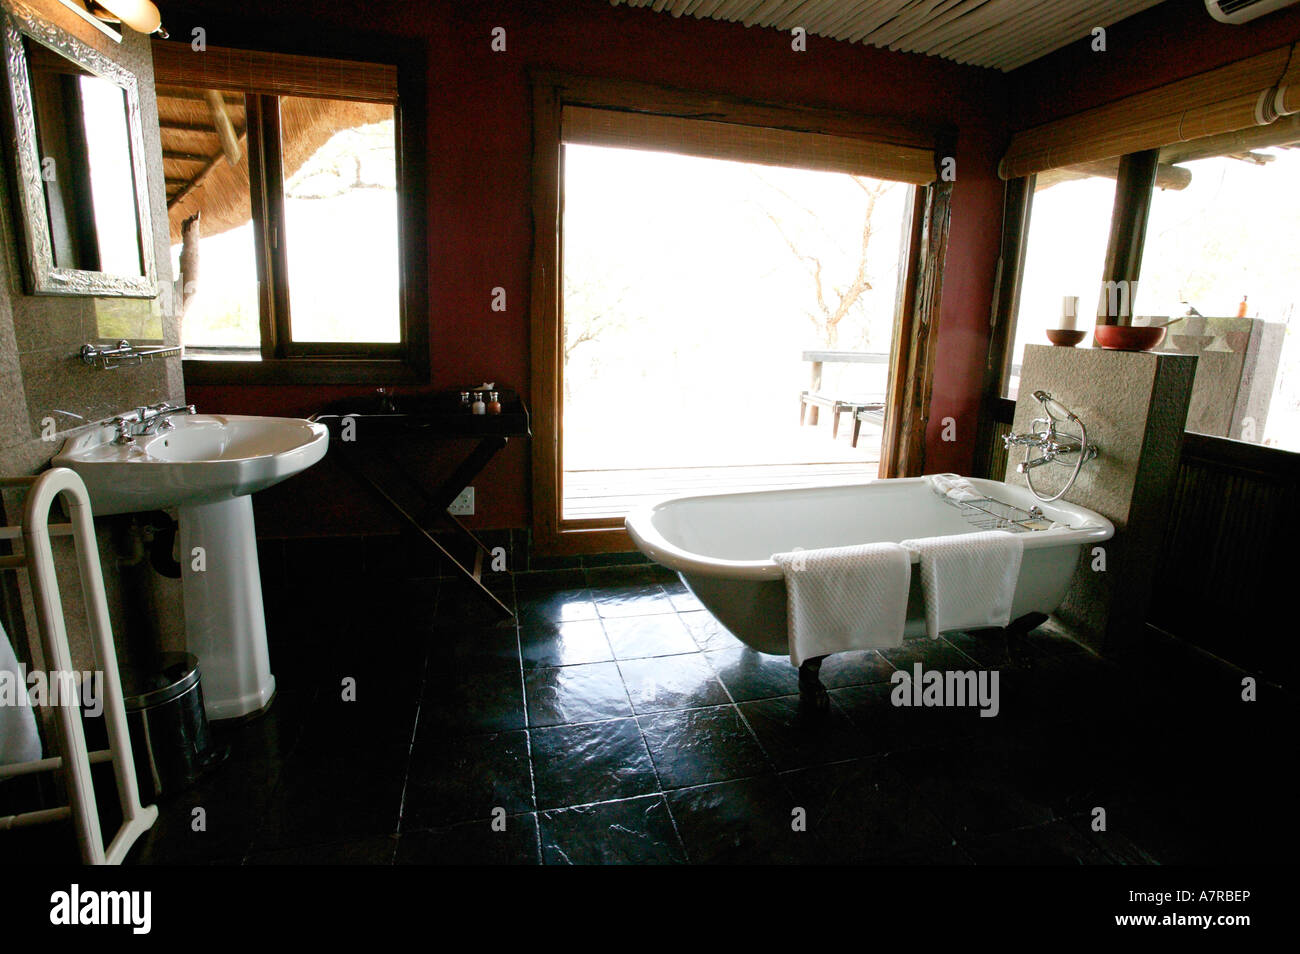 A Luxurious Bathroom At Singita Safaris Ebony Lodge Singita Game - Singita-luxury-african-game-reserve